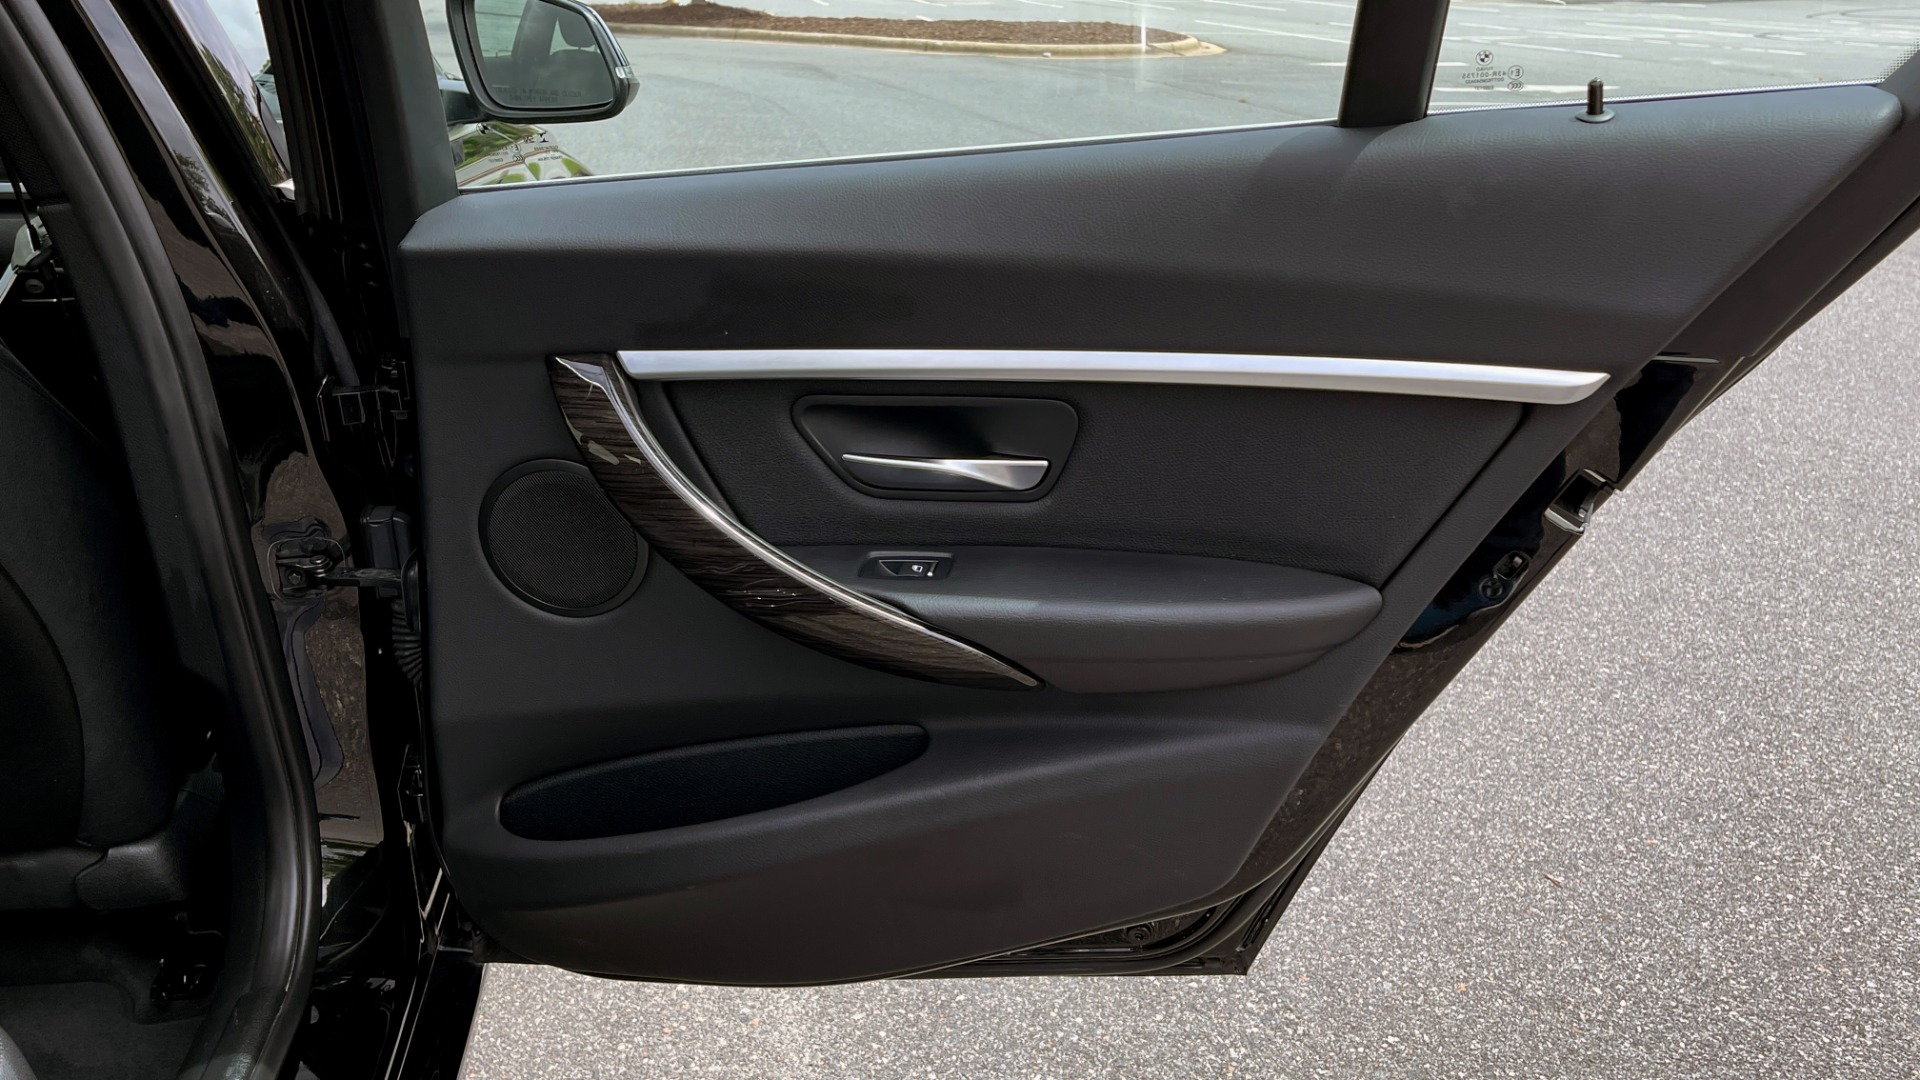 Used 2018 BMW 3 SERIES 330IXDRIVE / NAV / CONV PKG / ABSD / SUNROOF / REARVIEW for sale $29,599 at Formula Imports in Charlotte NC 28227 55